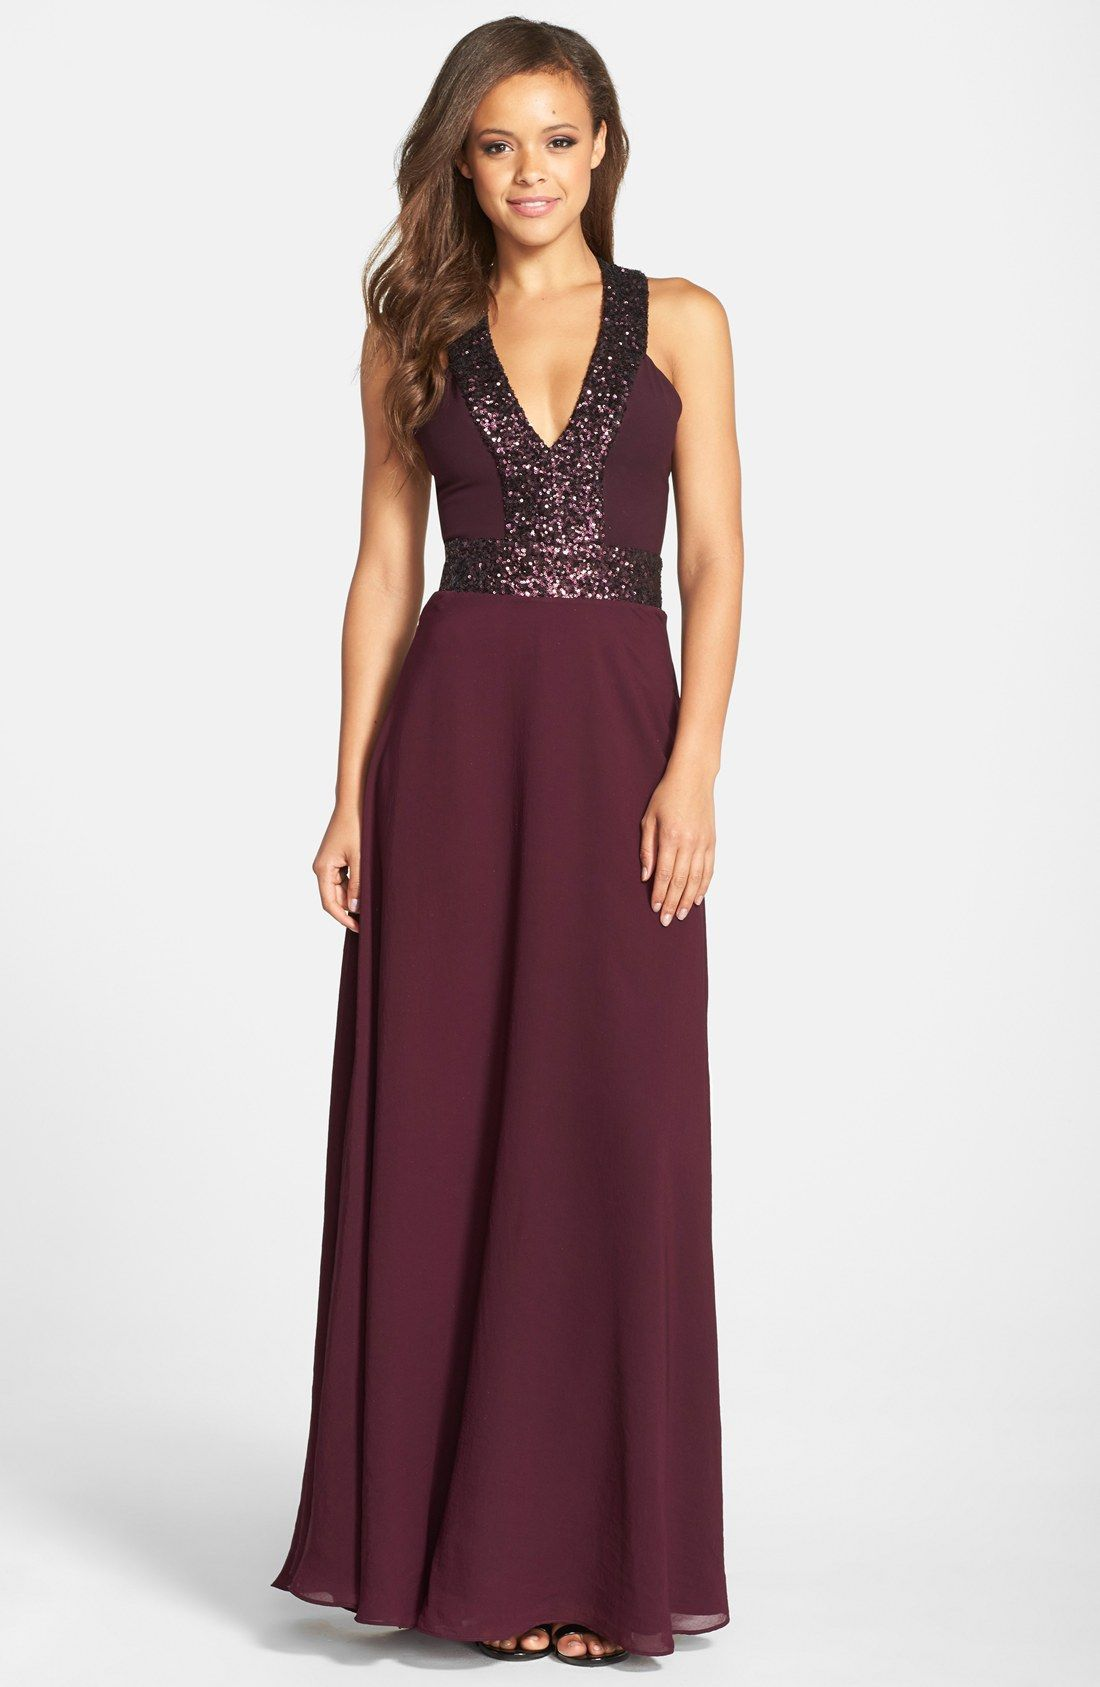 3a8a577f6 Dress the Population 'Delani' Sequin Crepe Gown | Get In My Closet ...